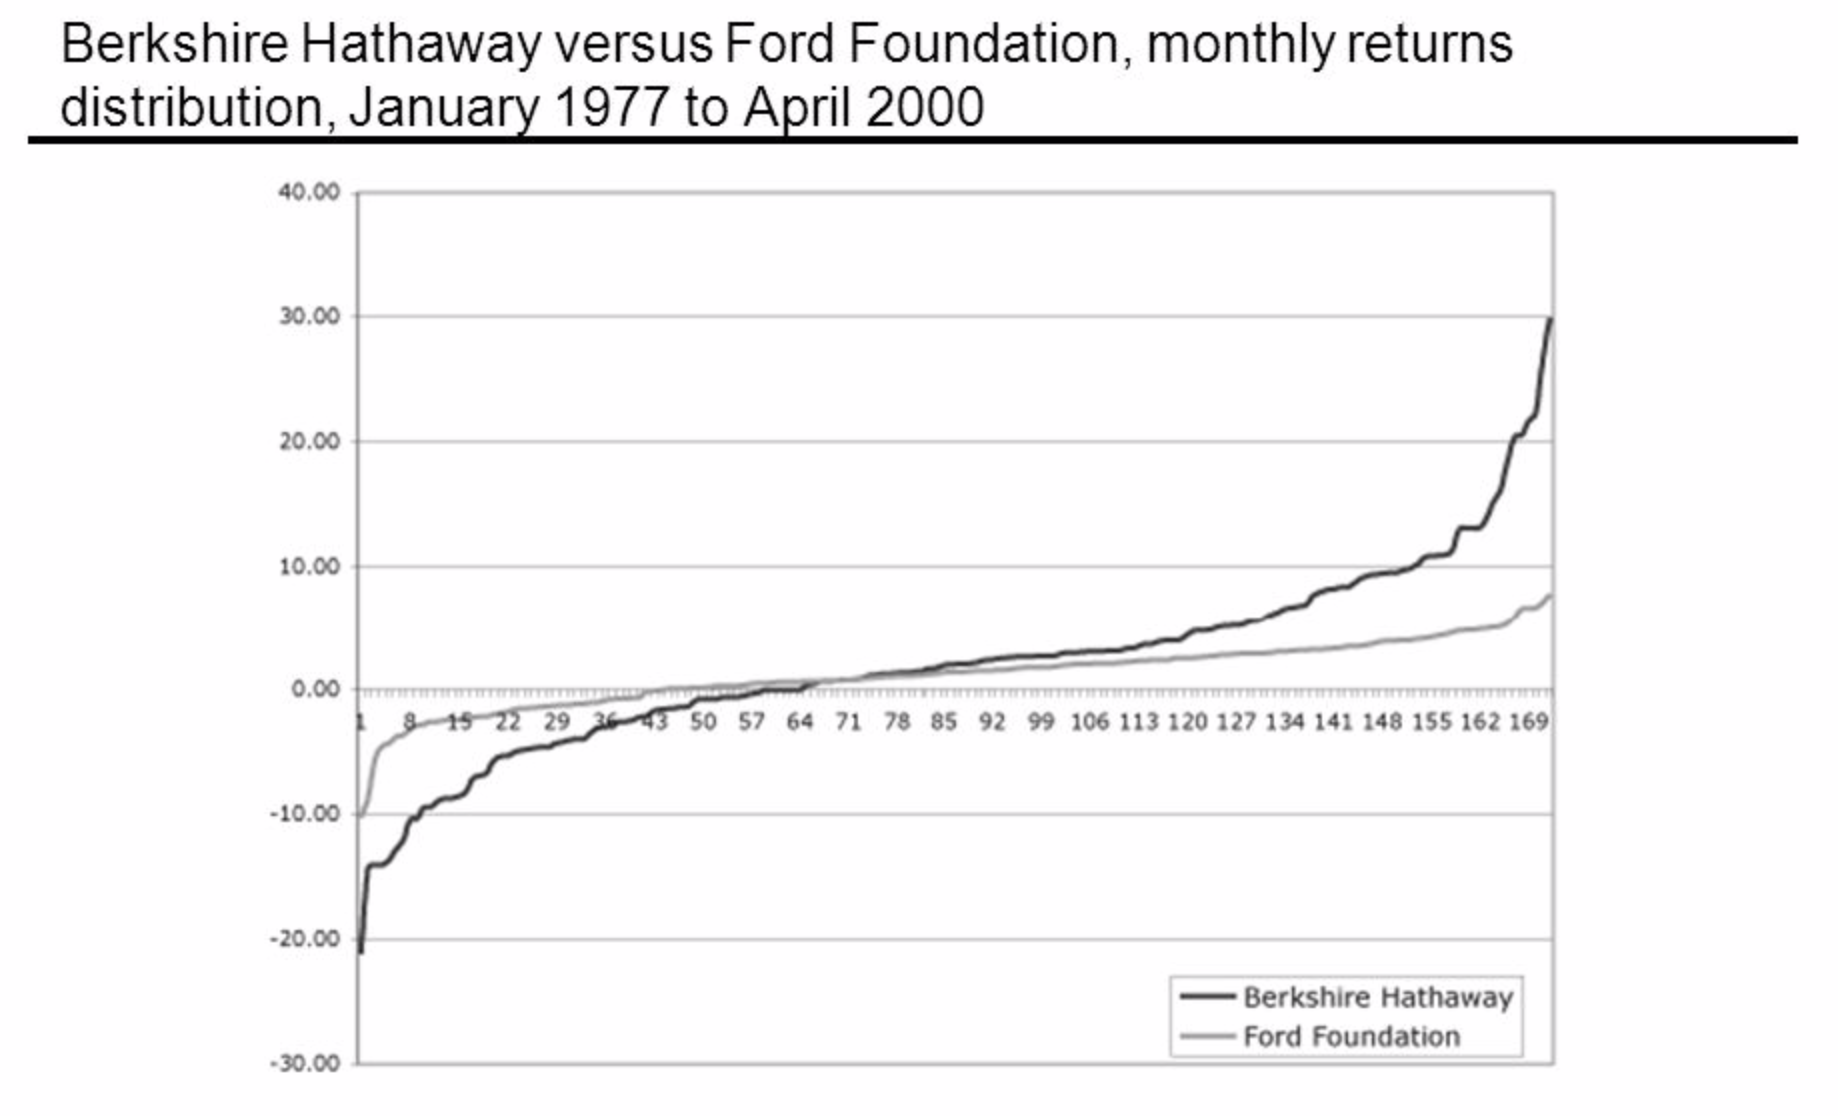 Ford and Berkshire Hathaway, Monthly Returns Distribution